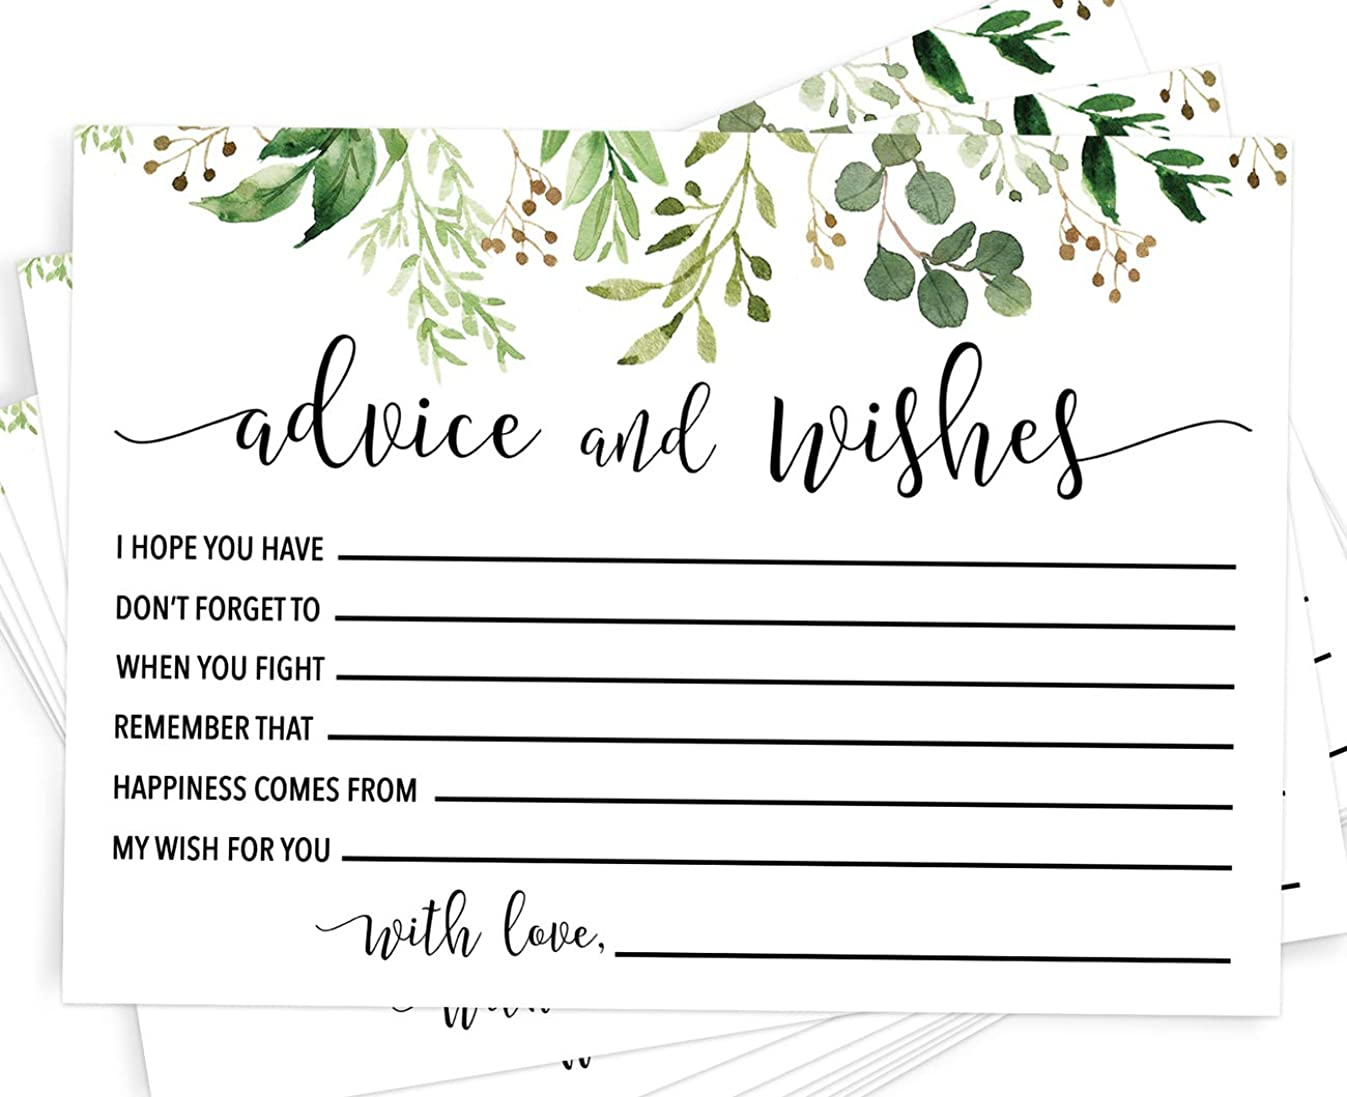 Advice and Wishes   Set of 50 Advice Cards for The Bride and Groom   Unique Wedding Guestbook Alternative and Bridal Shower Activity